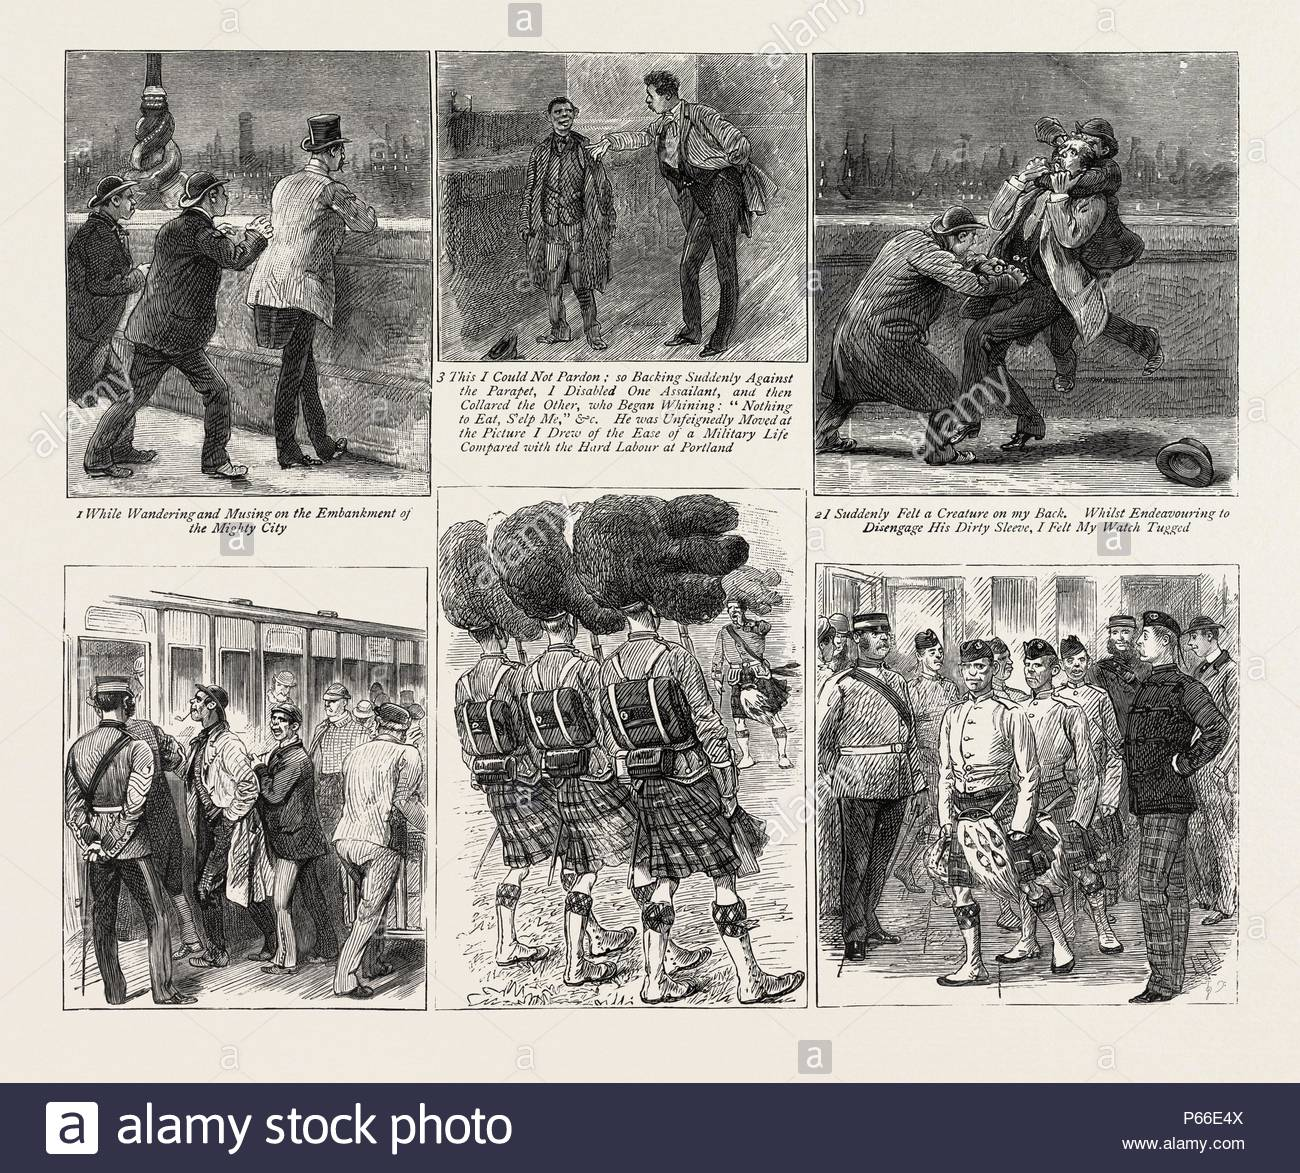 HOW HIGHLAND REGIMENTS SHOULD NOT BE RECRUITED, engraving 1884. - Stock Image